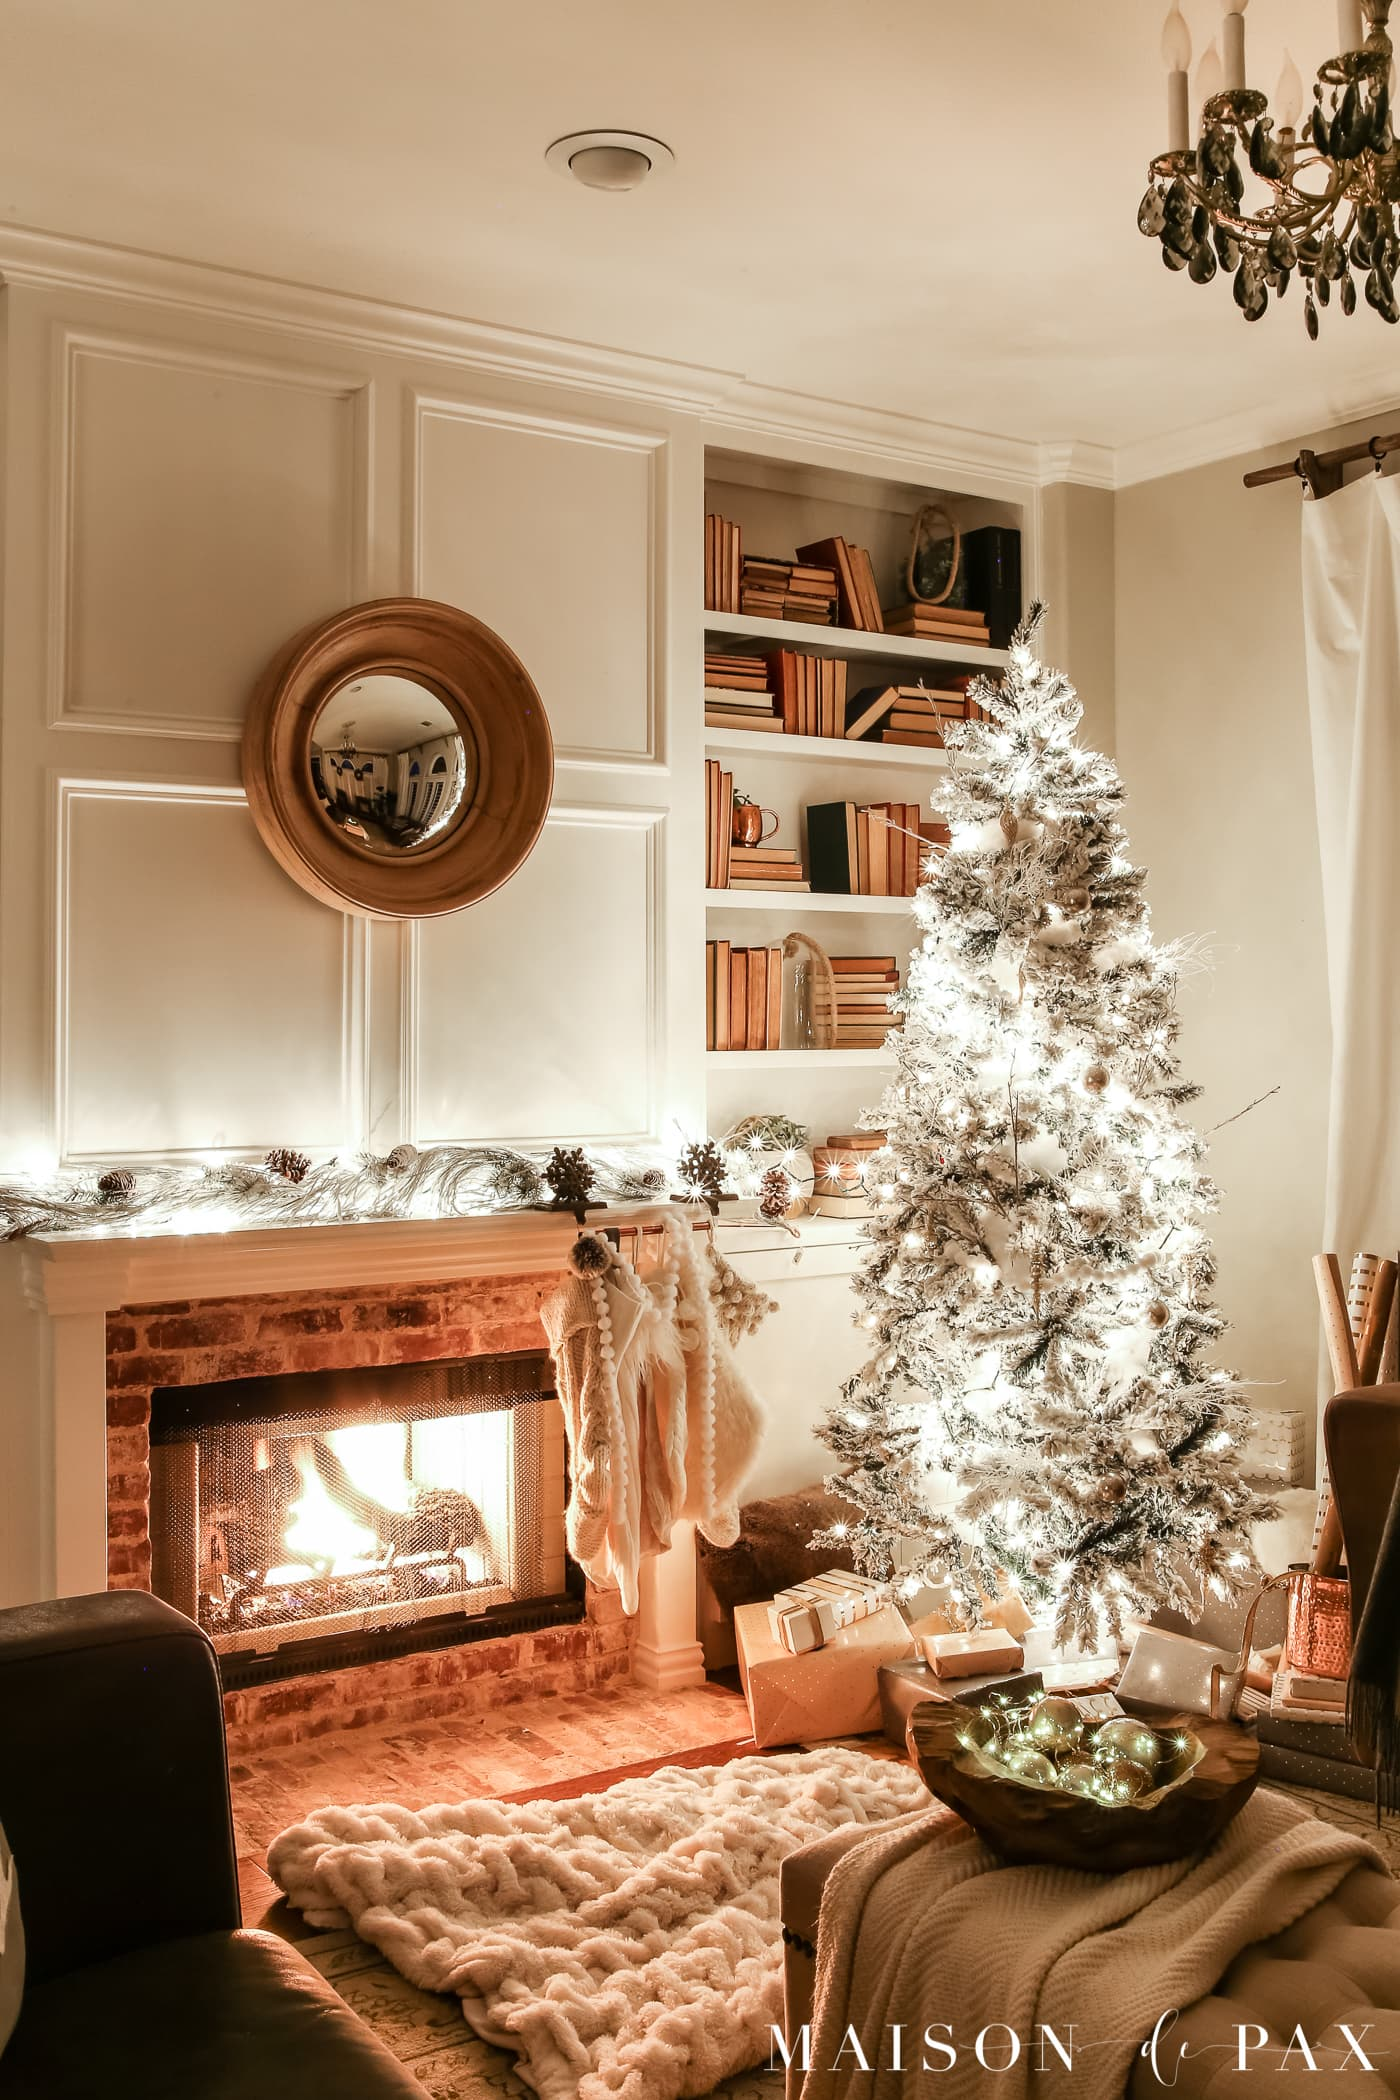 white stockings and tree: gorgeous Christmas lights at night in these 25+ home tours #christmasnightstour #holidayhometour #christmaslights